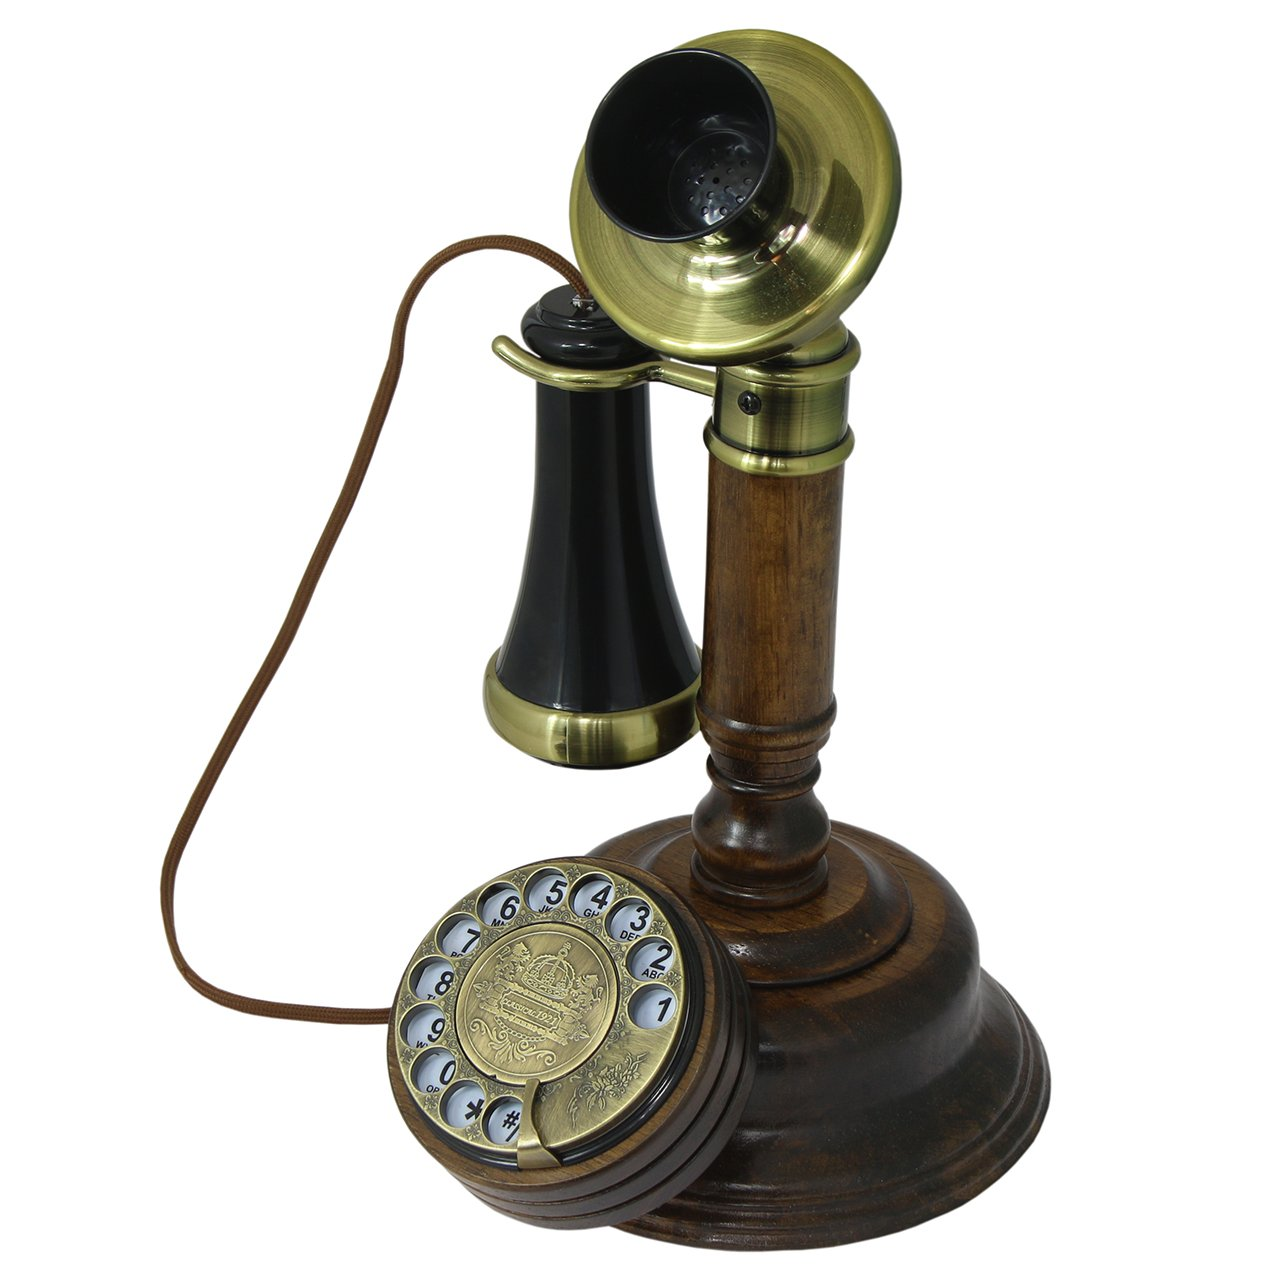 OPIS 1921 CABLE - MODEL C - antique style telephone made from real wood, classic black plastic parts partially gilded with brass - functional rotary dial and classic metal bell by Opis Technology